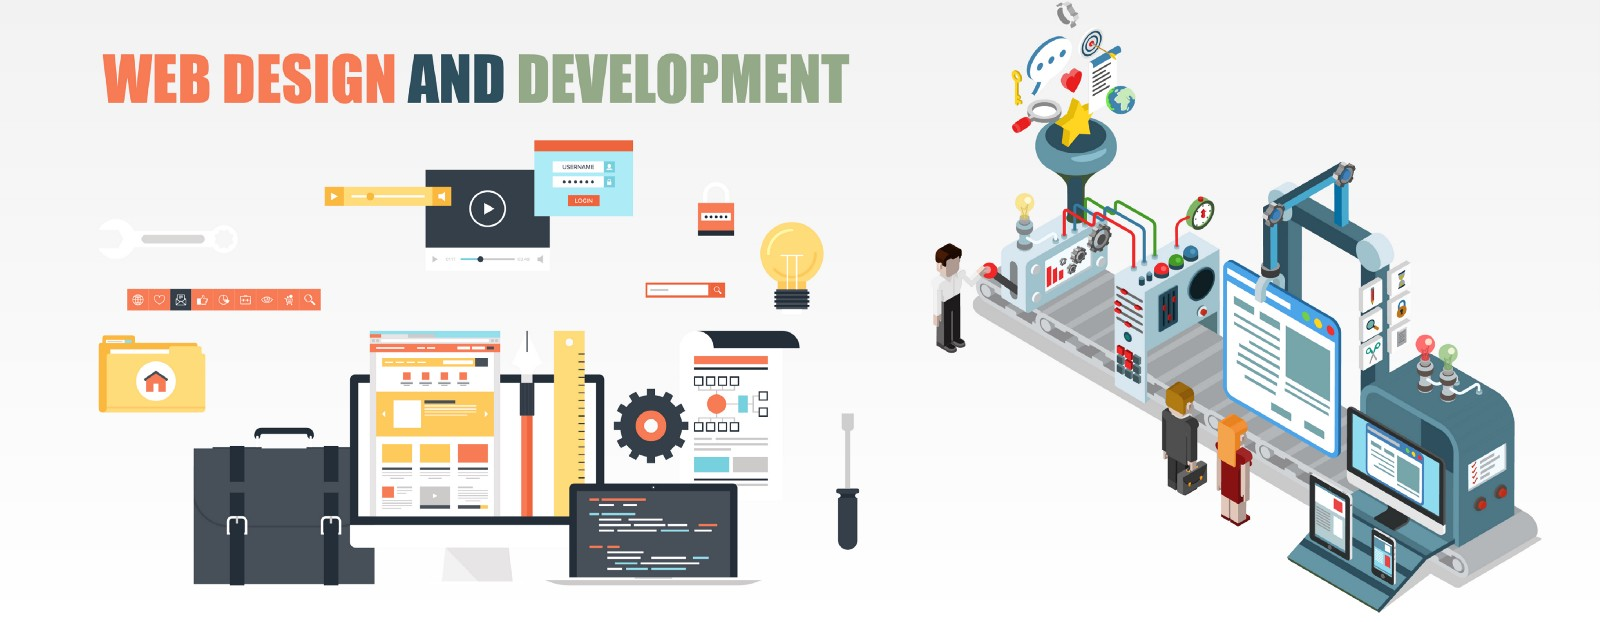 Design Firms In Singapore The 5 Most Successful Web Development Companies In Singapore